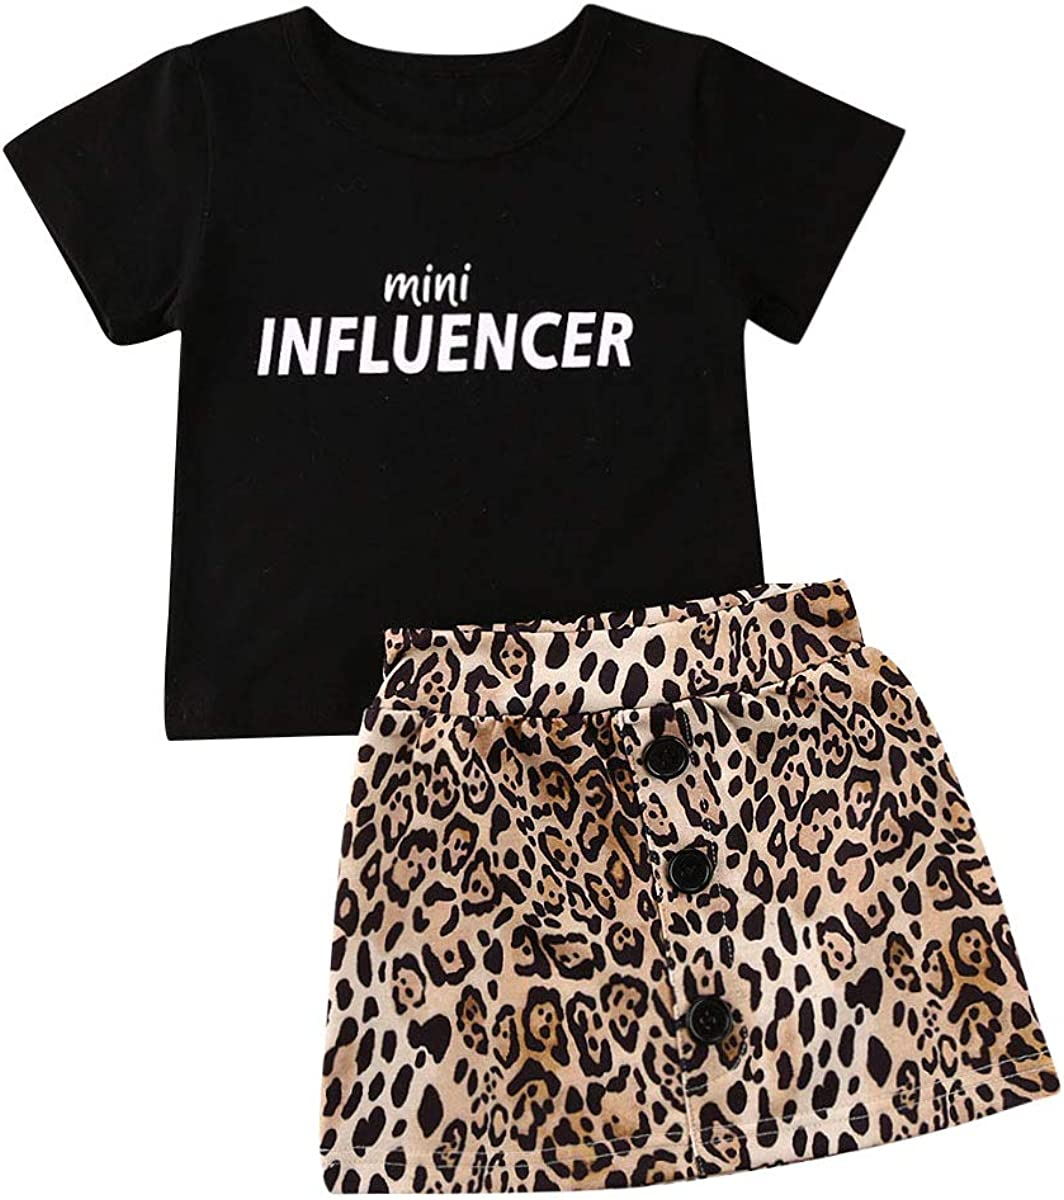 Fashion Baby Girl Skirt Outfits Set Short Sleeve Mini Influencer Tops T-Shirts Leopard Mini Button Skirt Summer Clothes